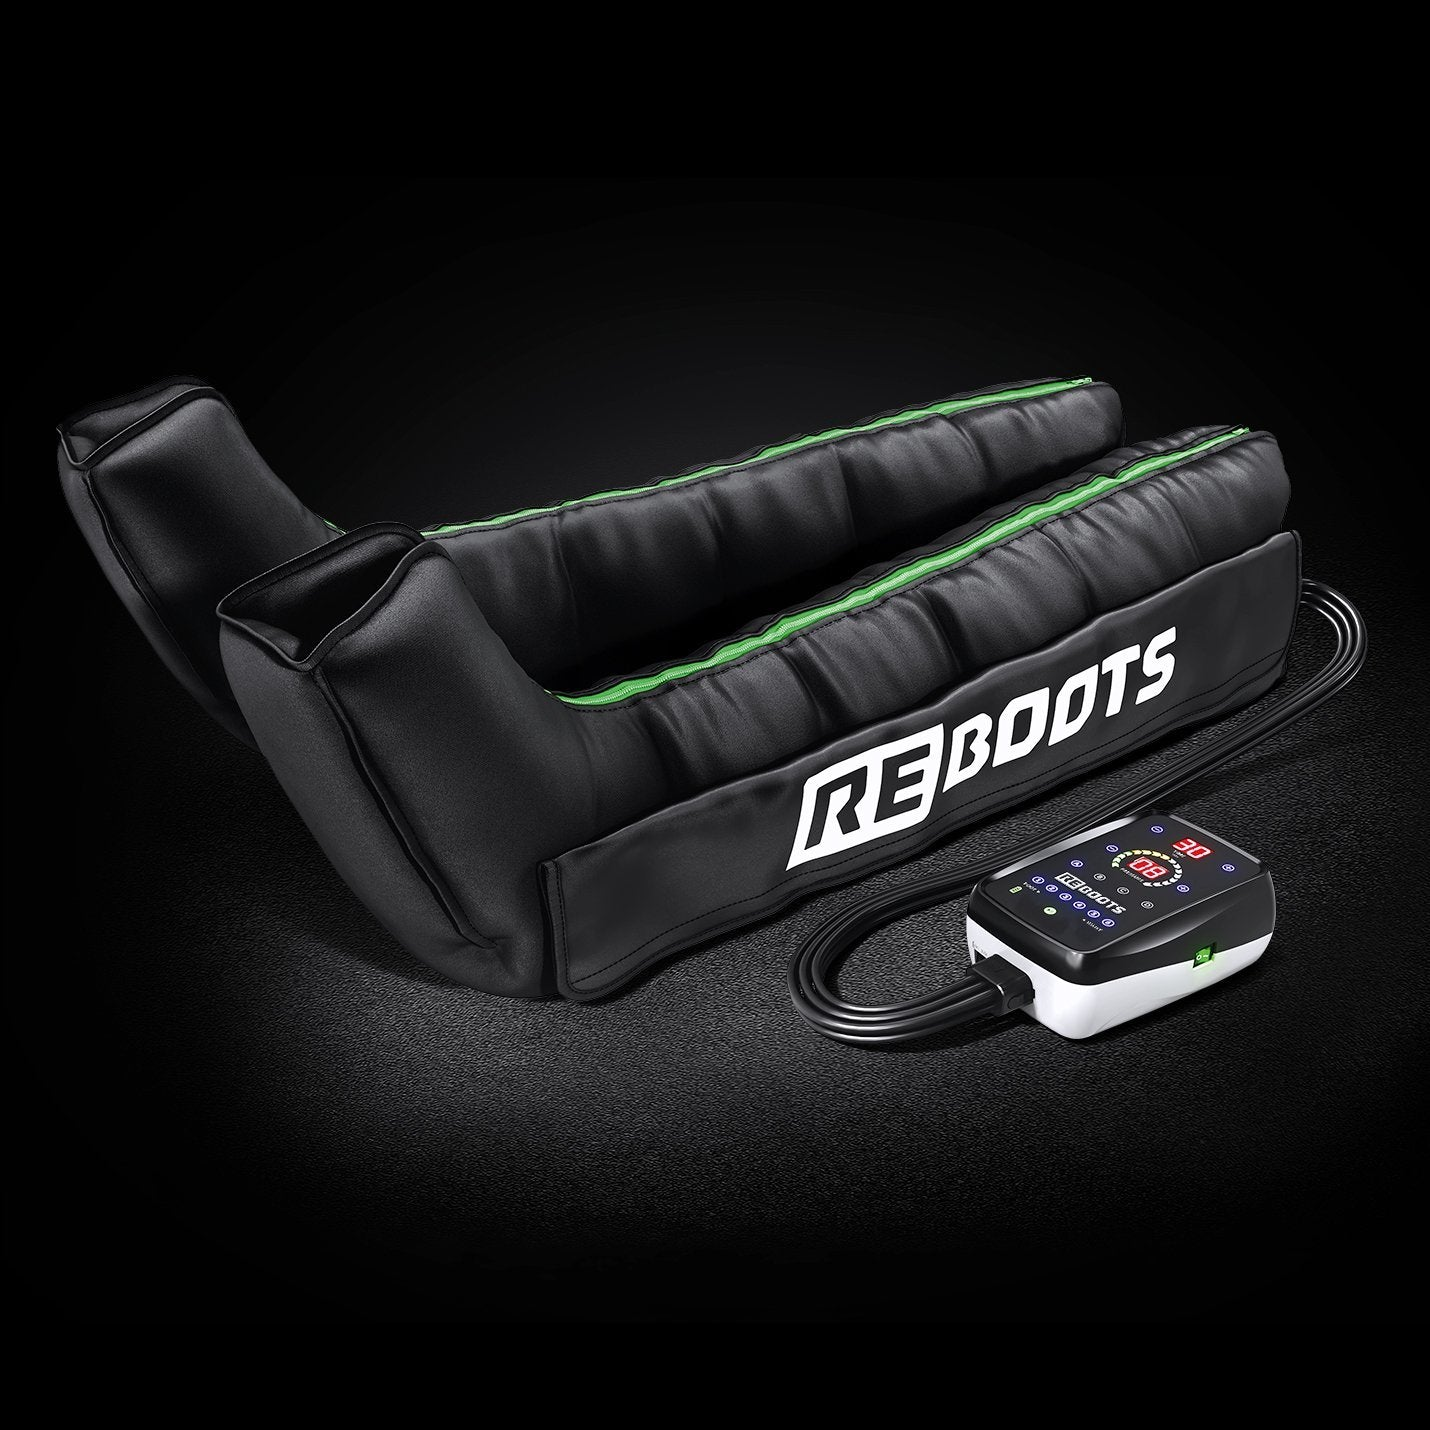 Reboots Go Recovery Boots - Reboots Shop